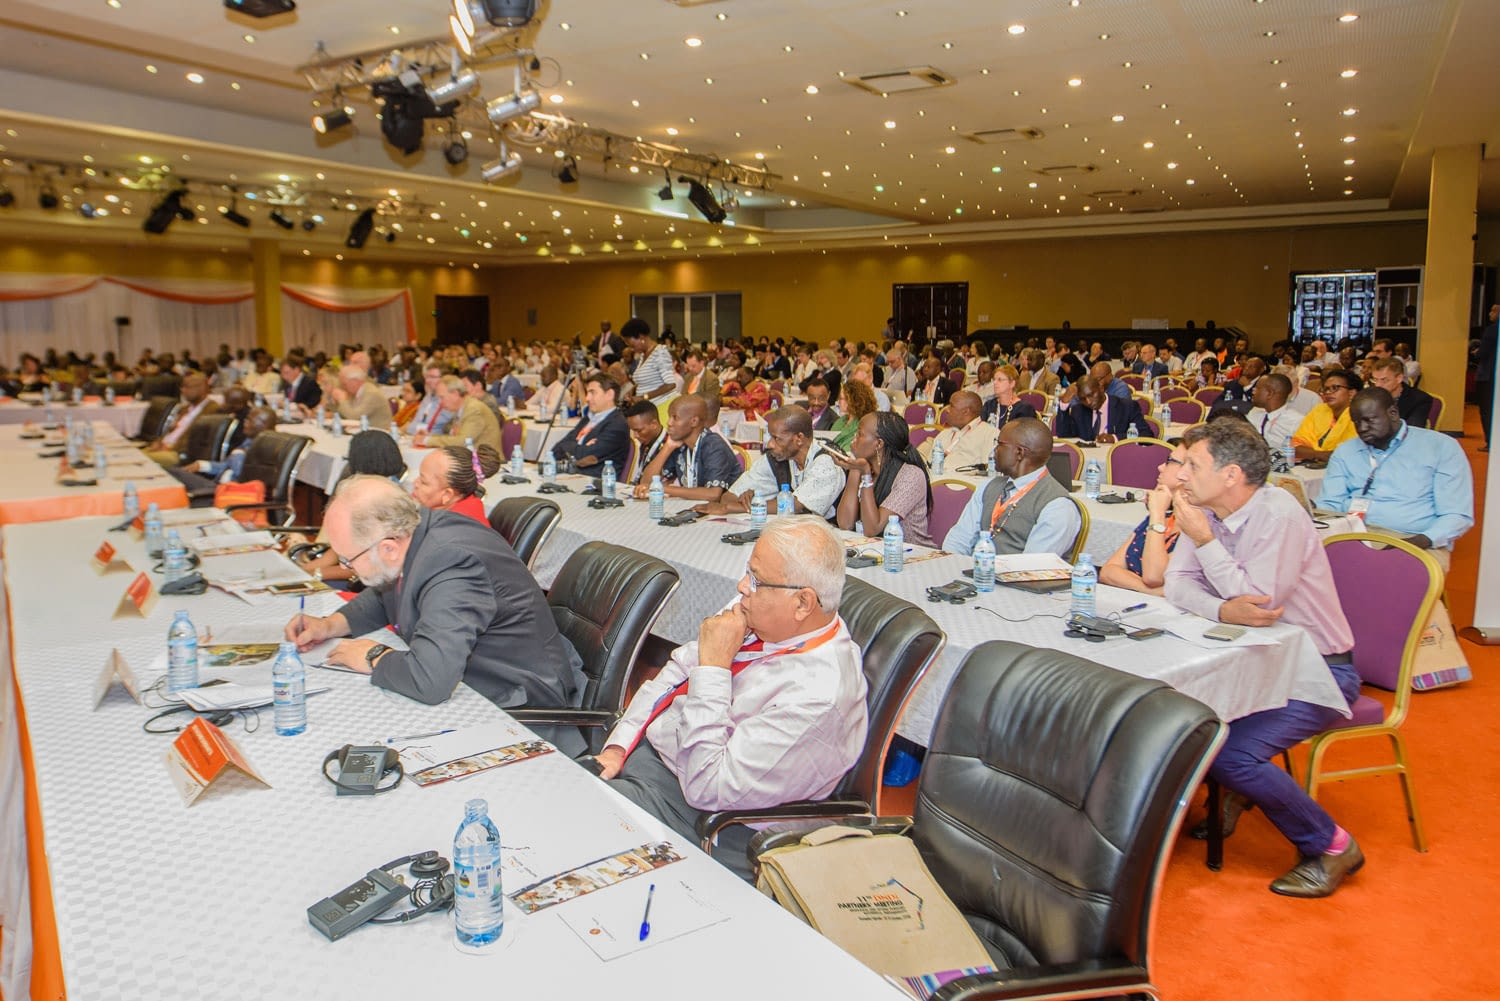 More than 400 participants from over 40 countries convened for the 11th DNDi Partners' Meeting.